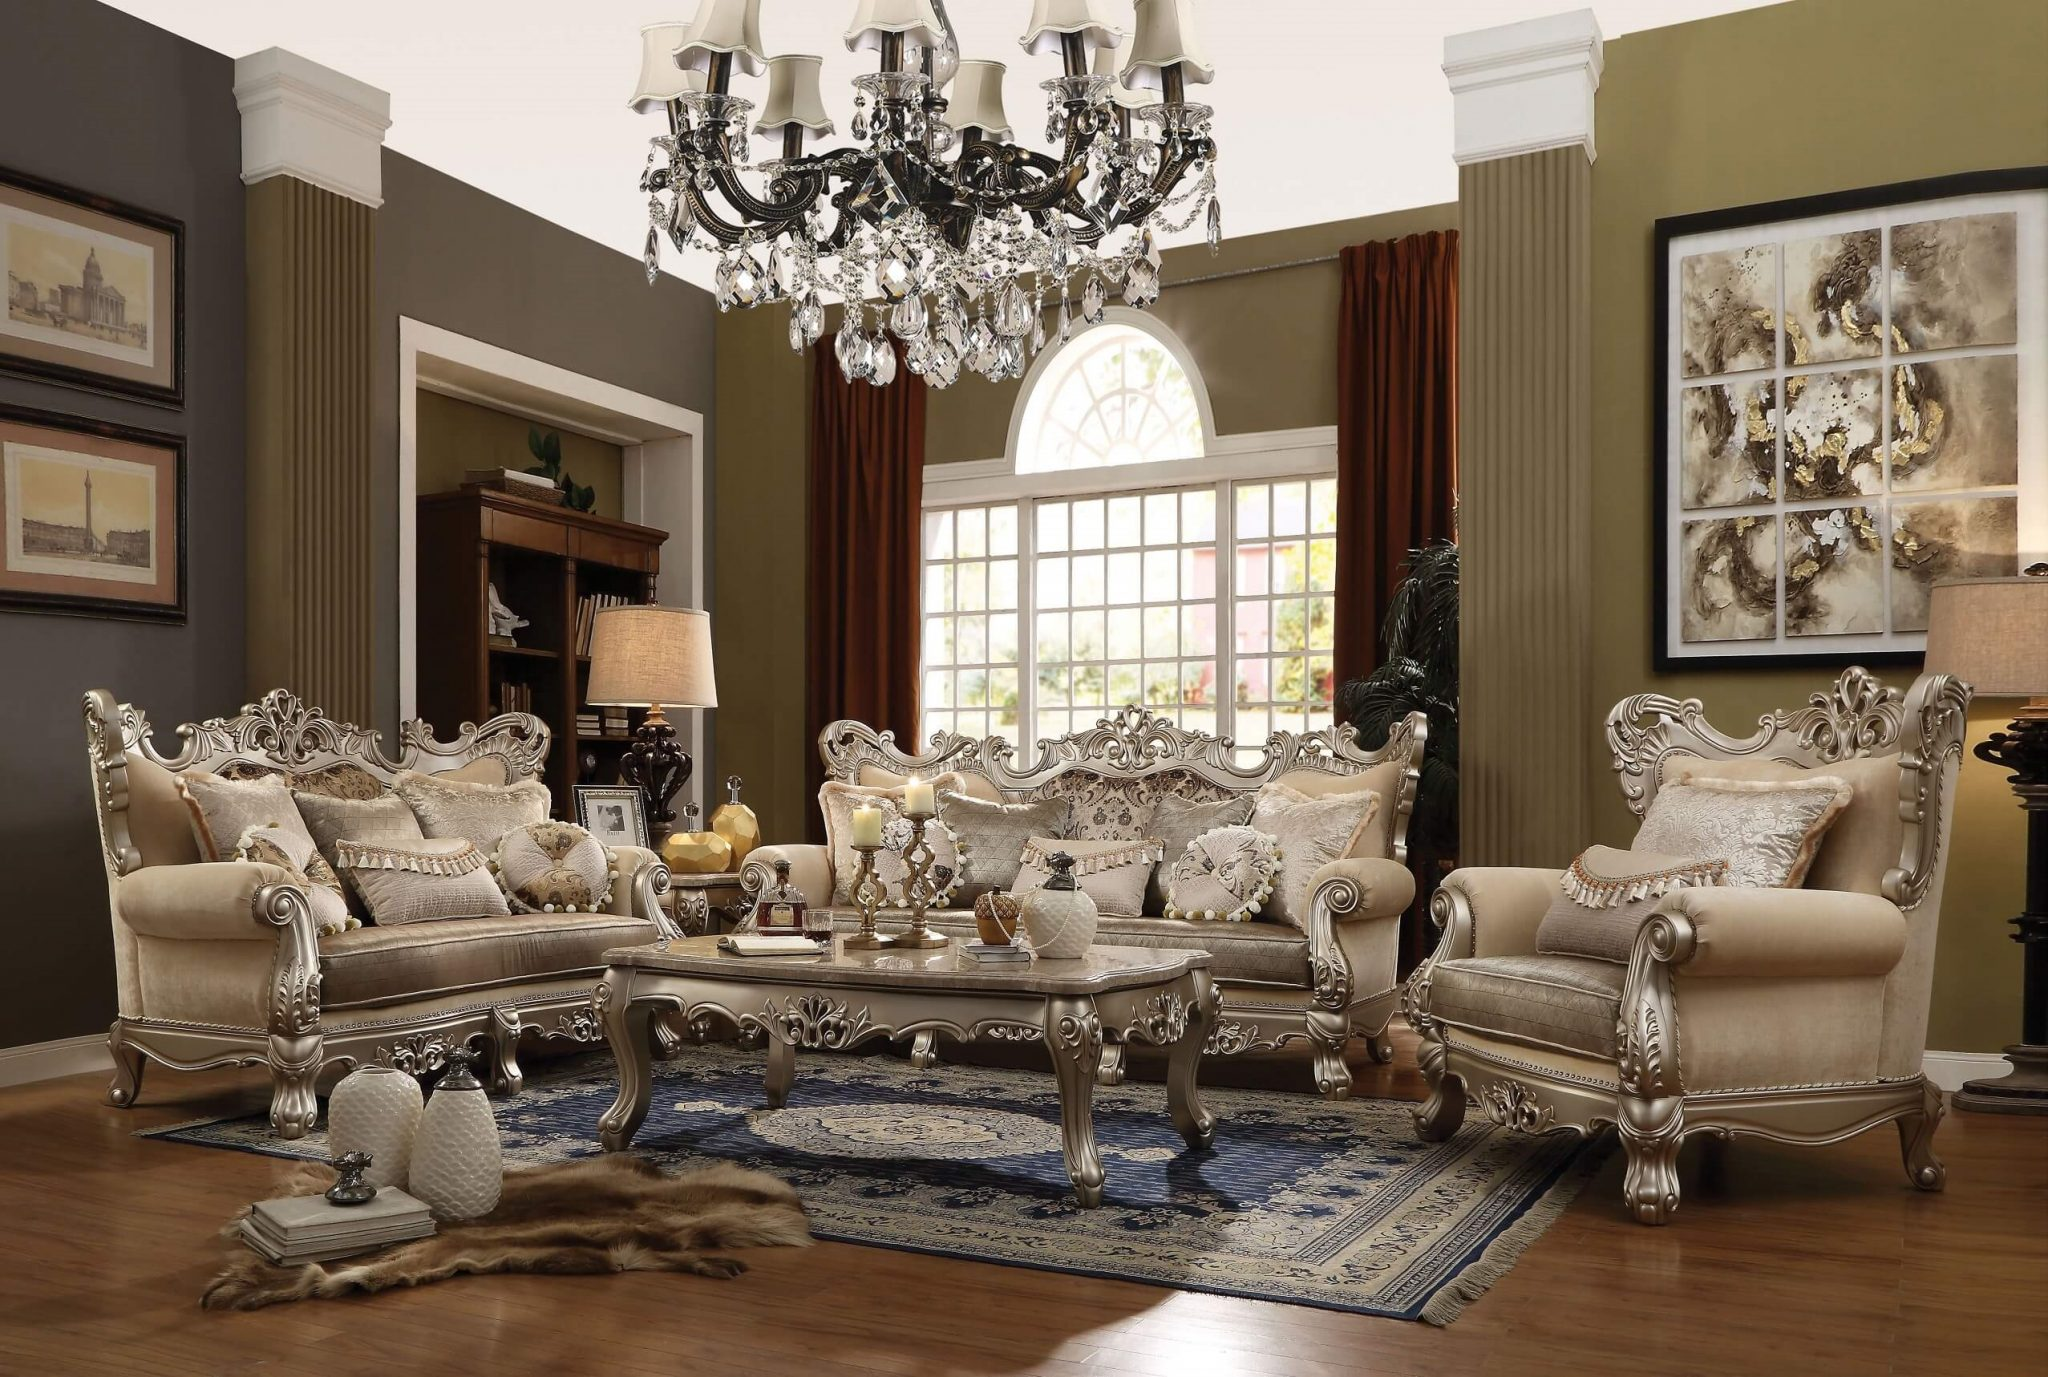 Acme Ranita Traditional Living Room Set - USA Furniture Online